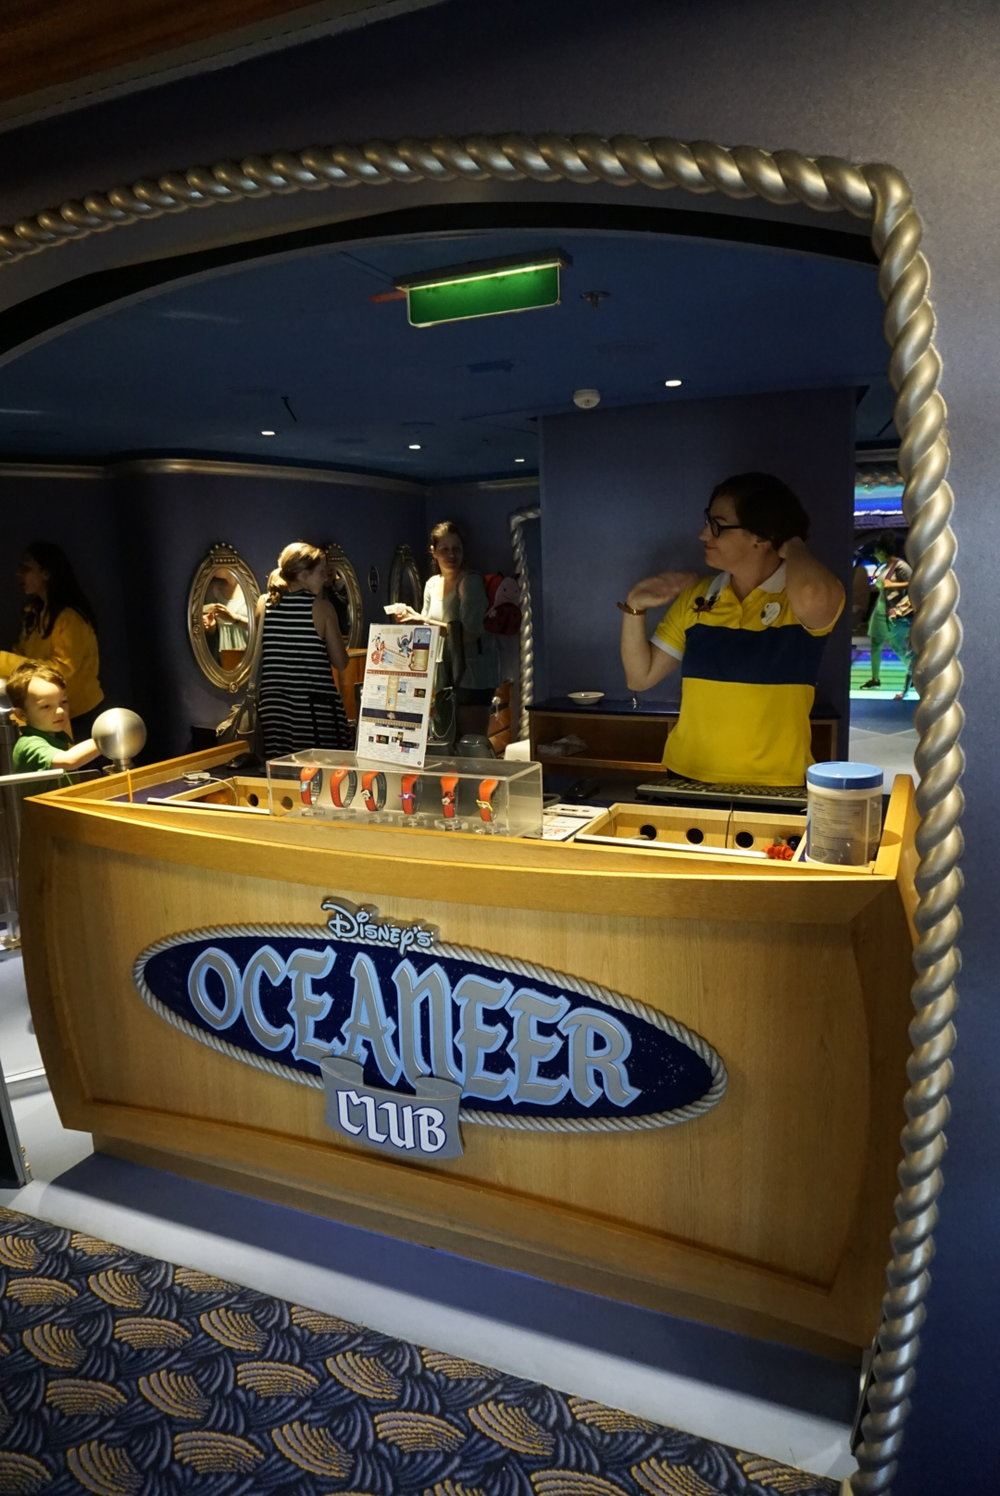 disney-cruise-oceaners-club-5.JPG